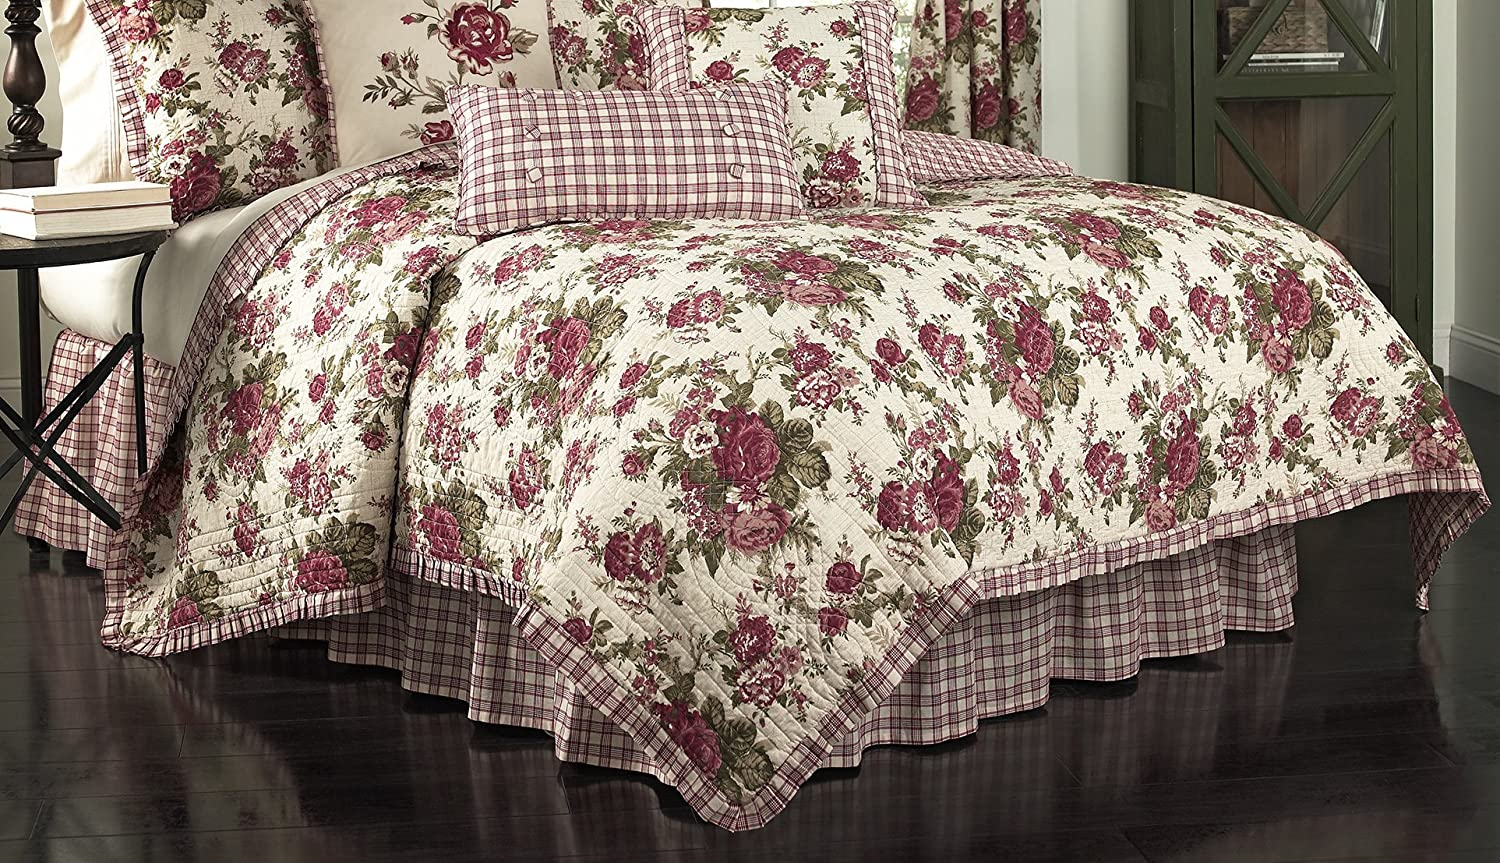 Waverly 14770BEDDF QTSN Norfolk 90-Inch by 88-Inch Reversible 4 Piece Full Queen Quilt Collection, Tea Stain